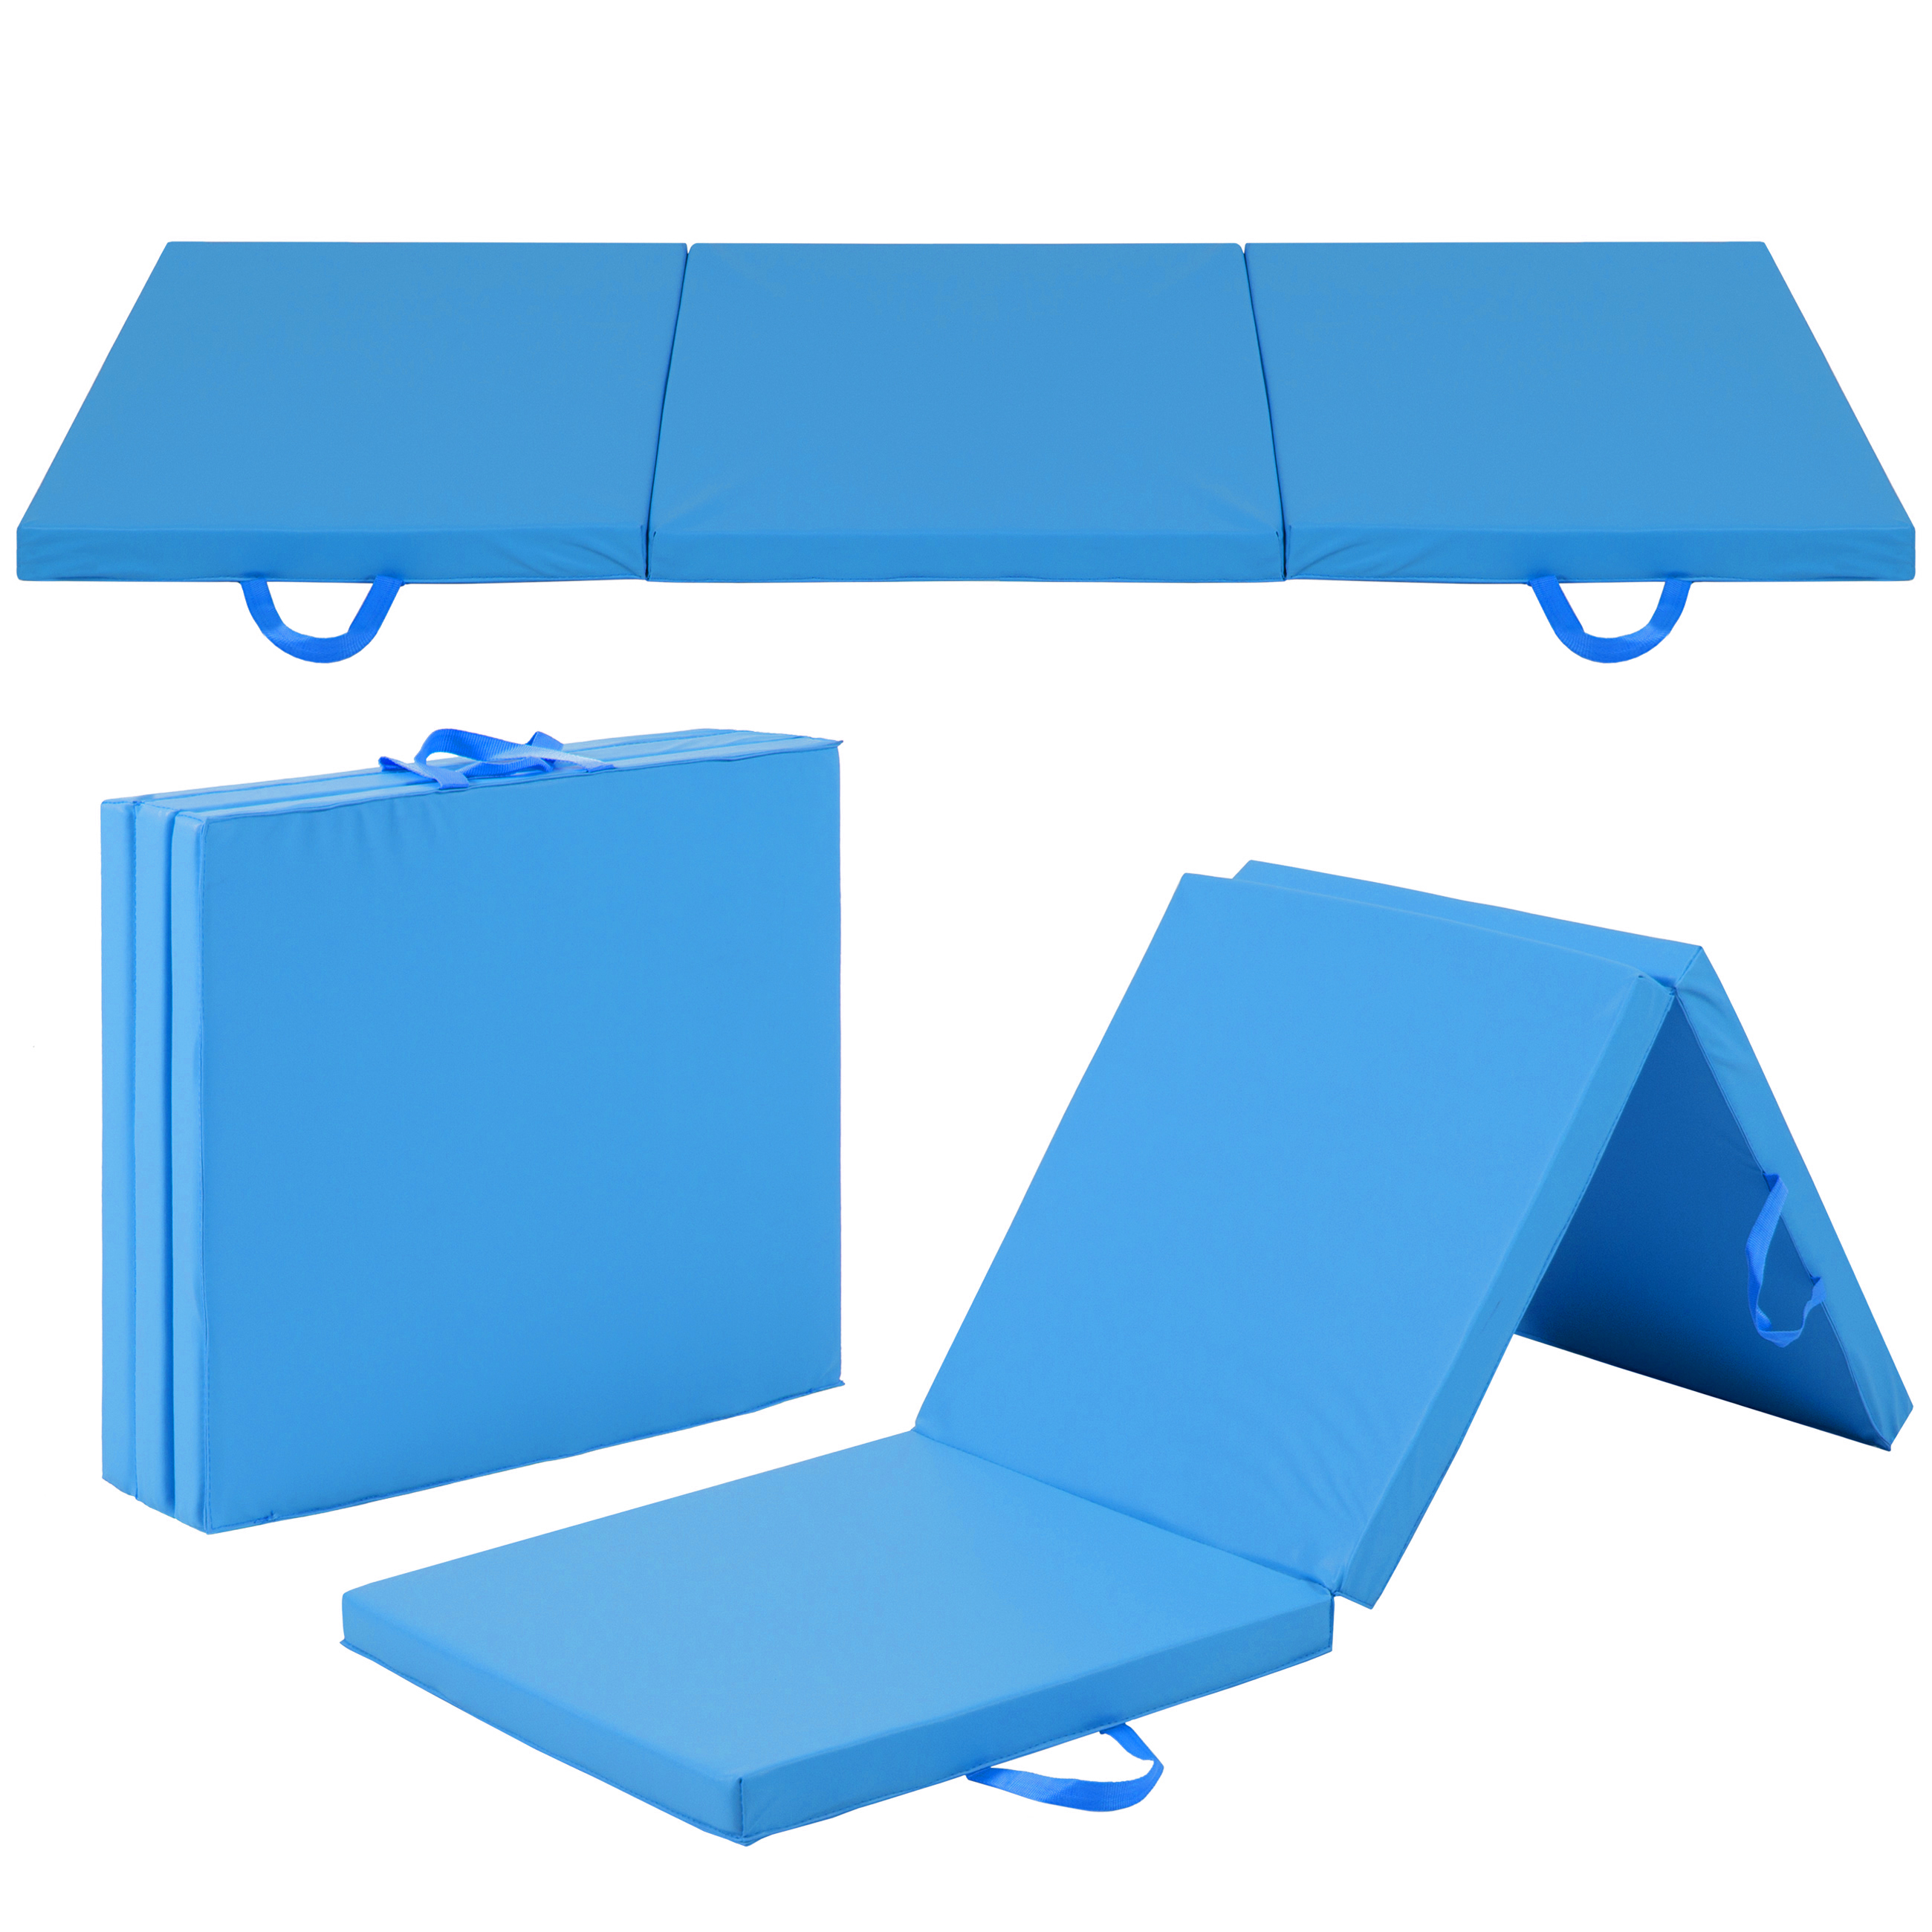 Best Choice Products 6x2ft Exercise Tri-Fold Gym Mat For Gymnastics, Aerobics, Yoga, Martial Arts - Blue